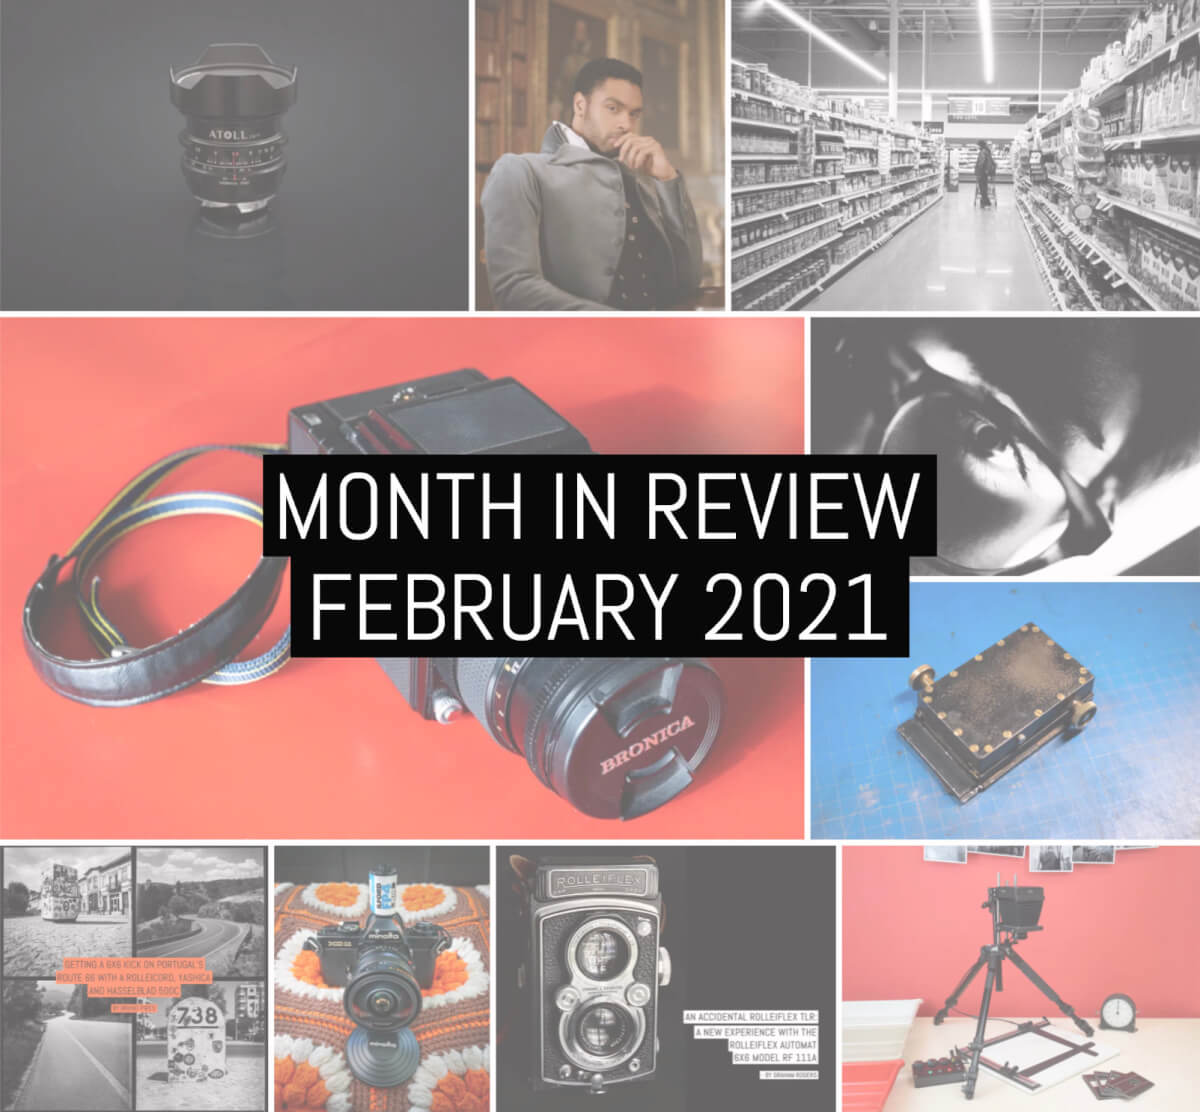 Month in review - 2021 February